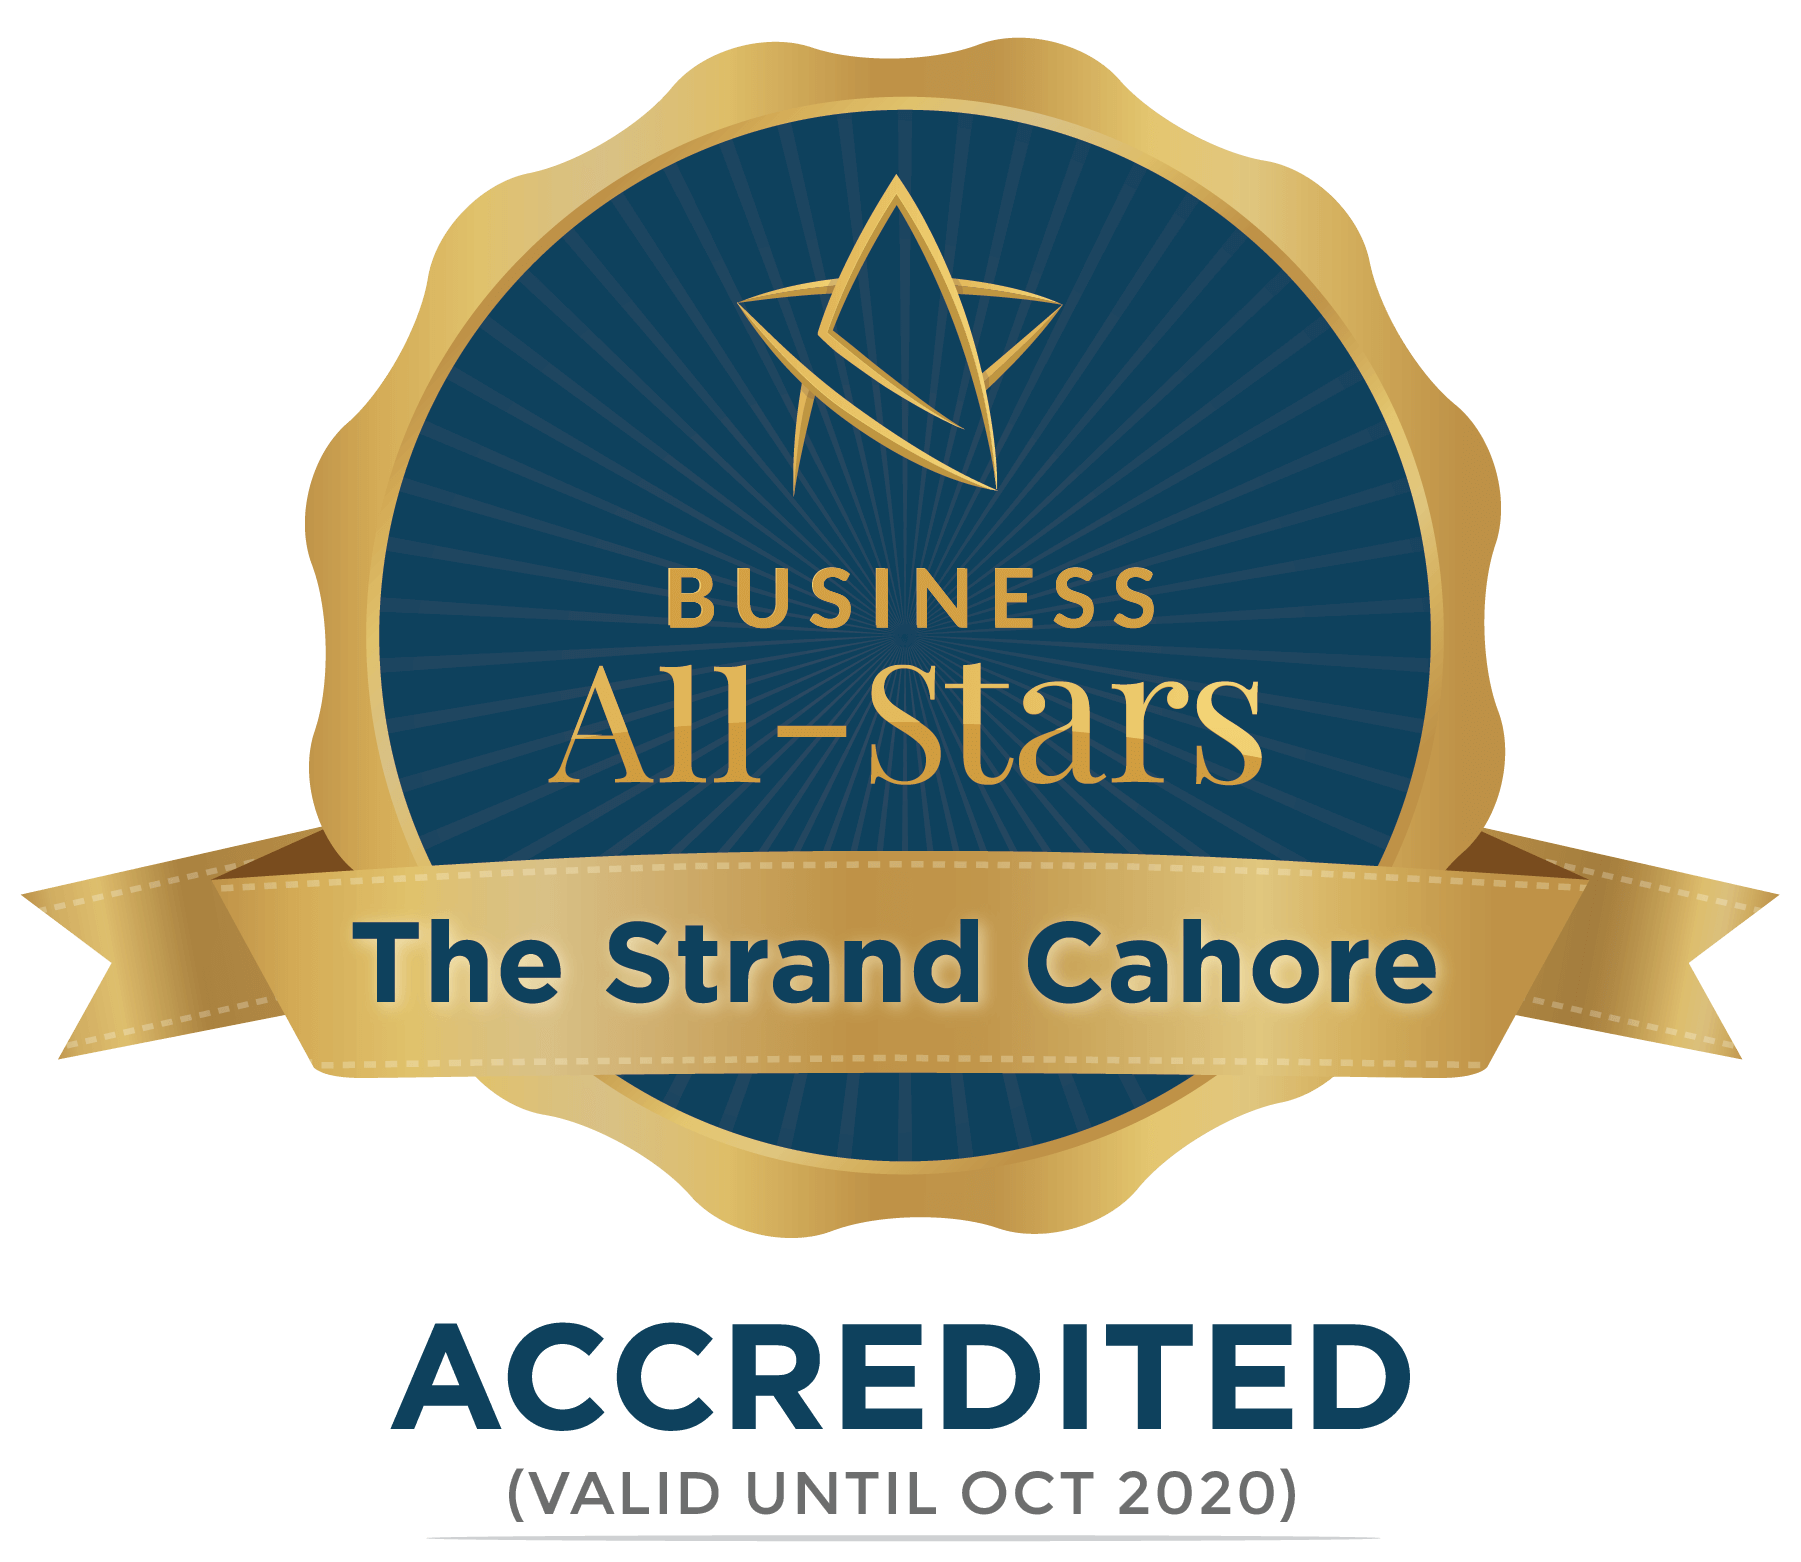 The Strand Cahore - Business All-Stars Accreditation